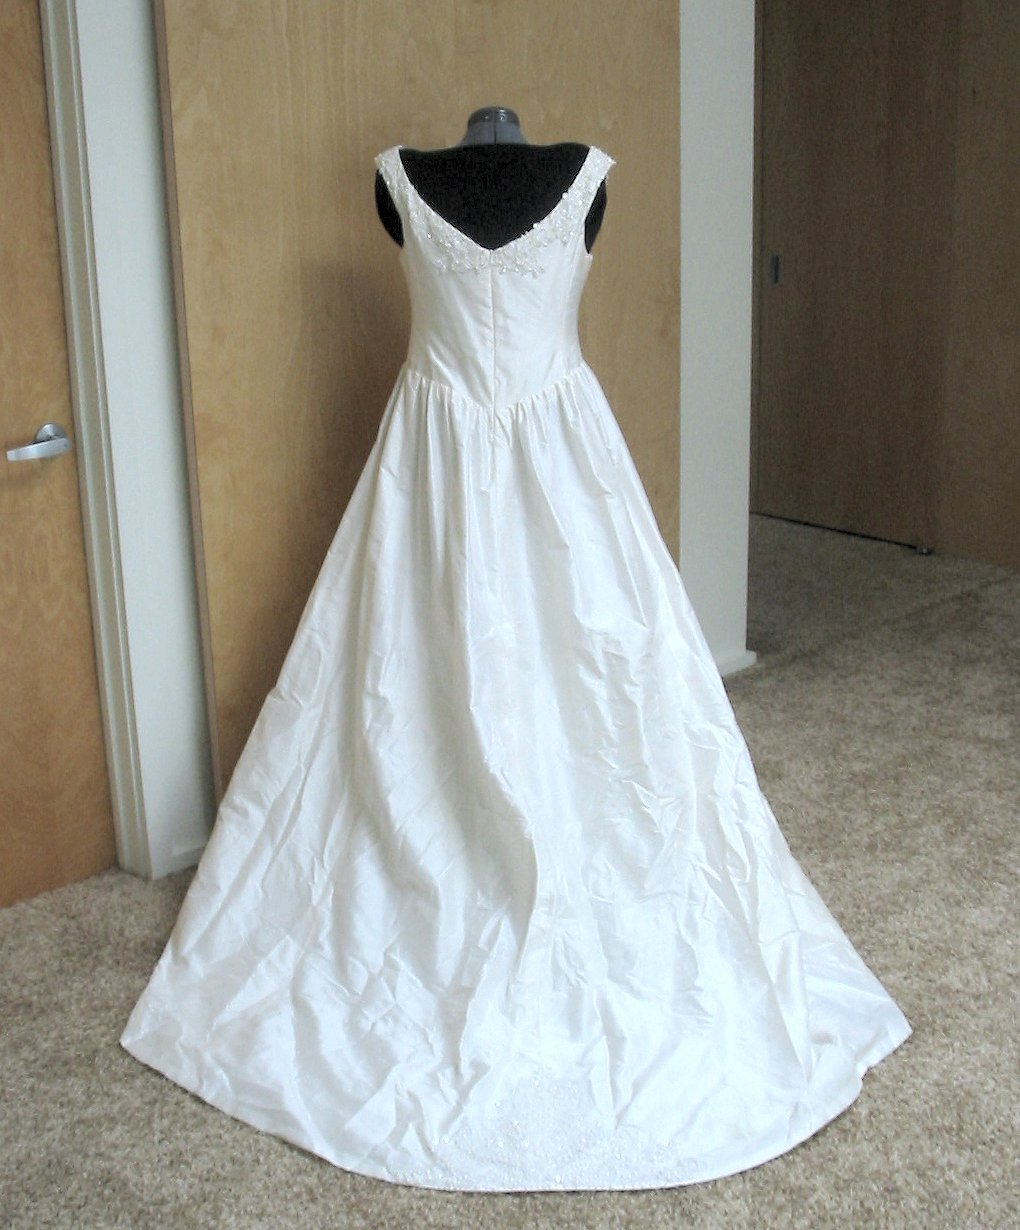 Butterick bridal patterns patterns gallery for Butterick wedding dress patterns